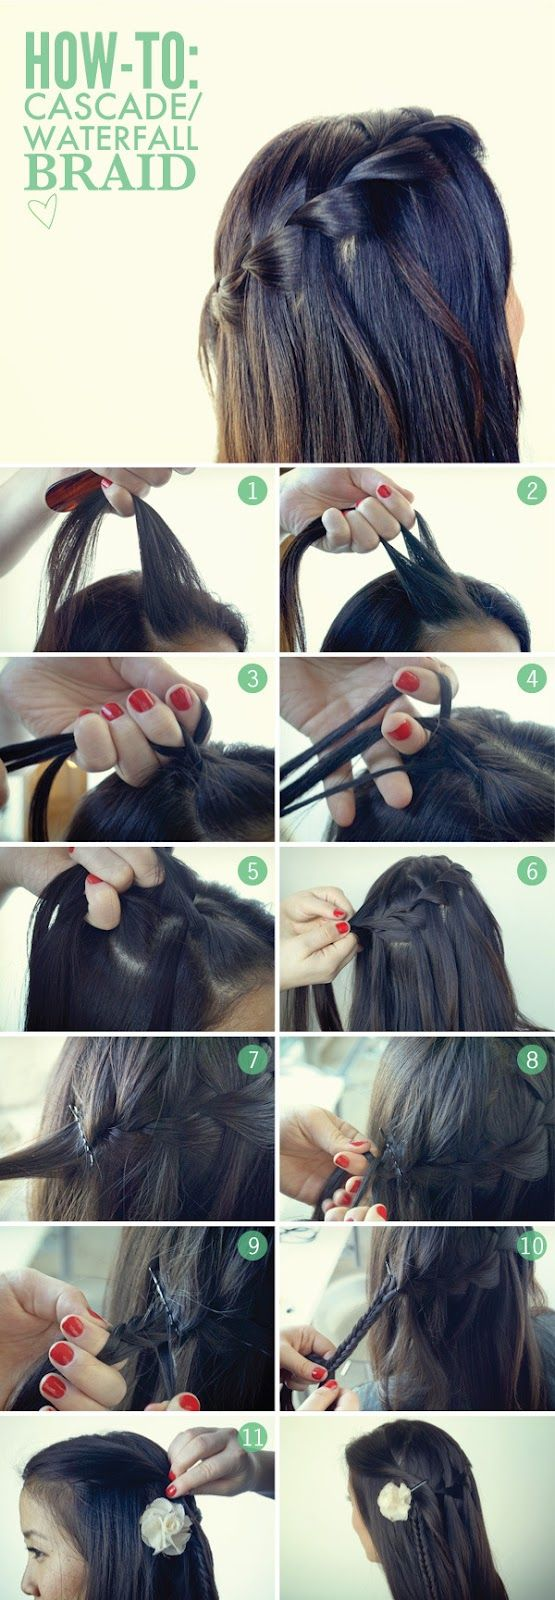 How to do The cascade waterfall braid   tutorial in picture